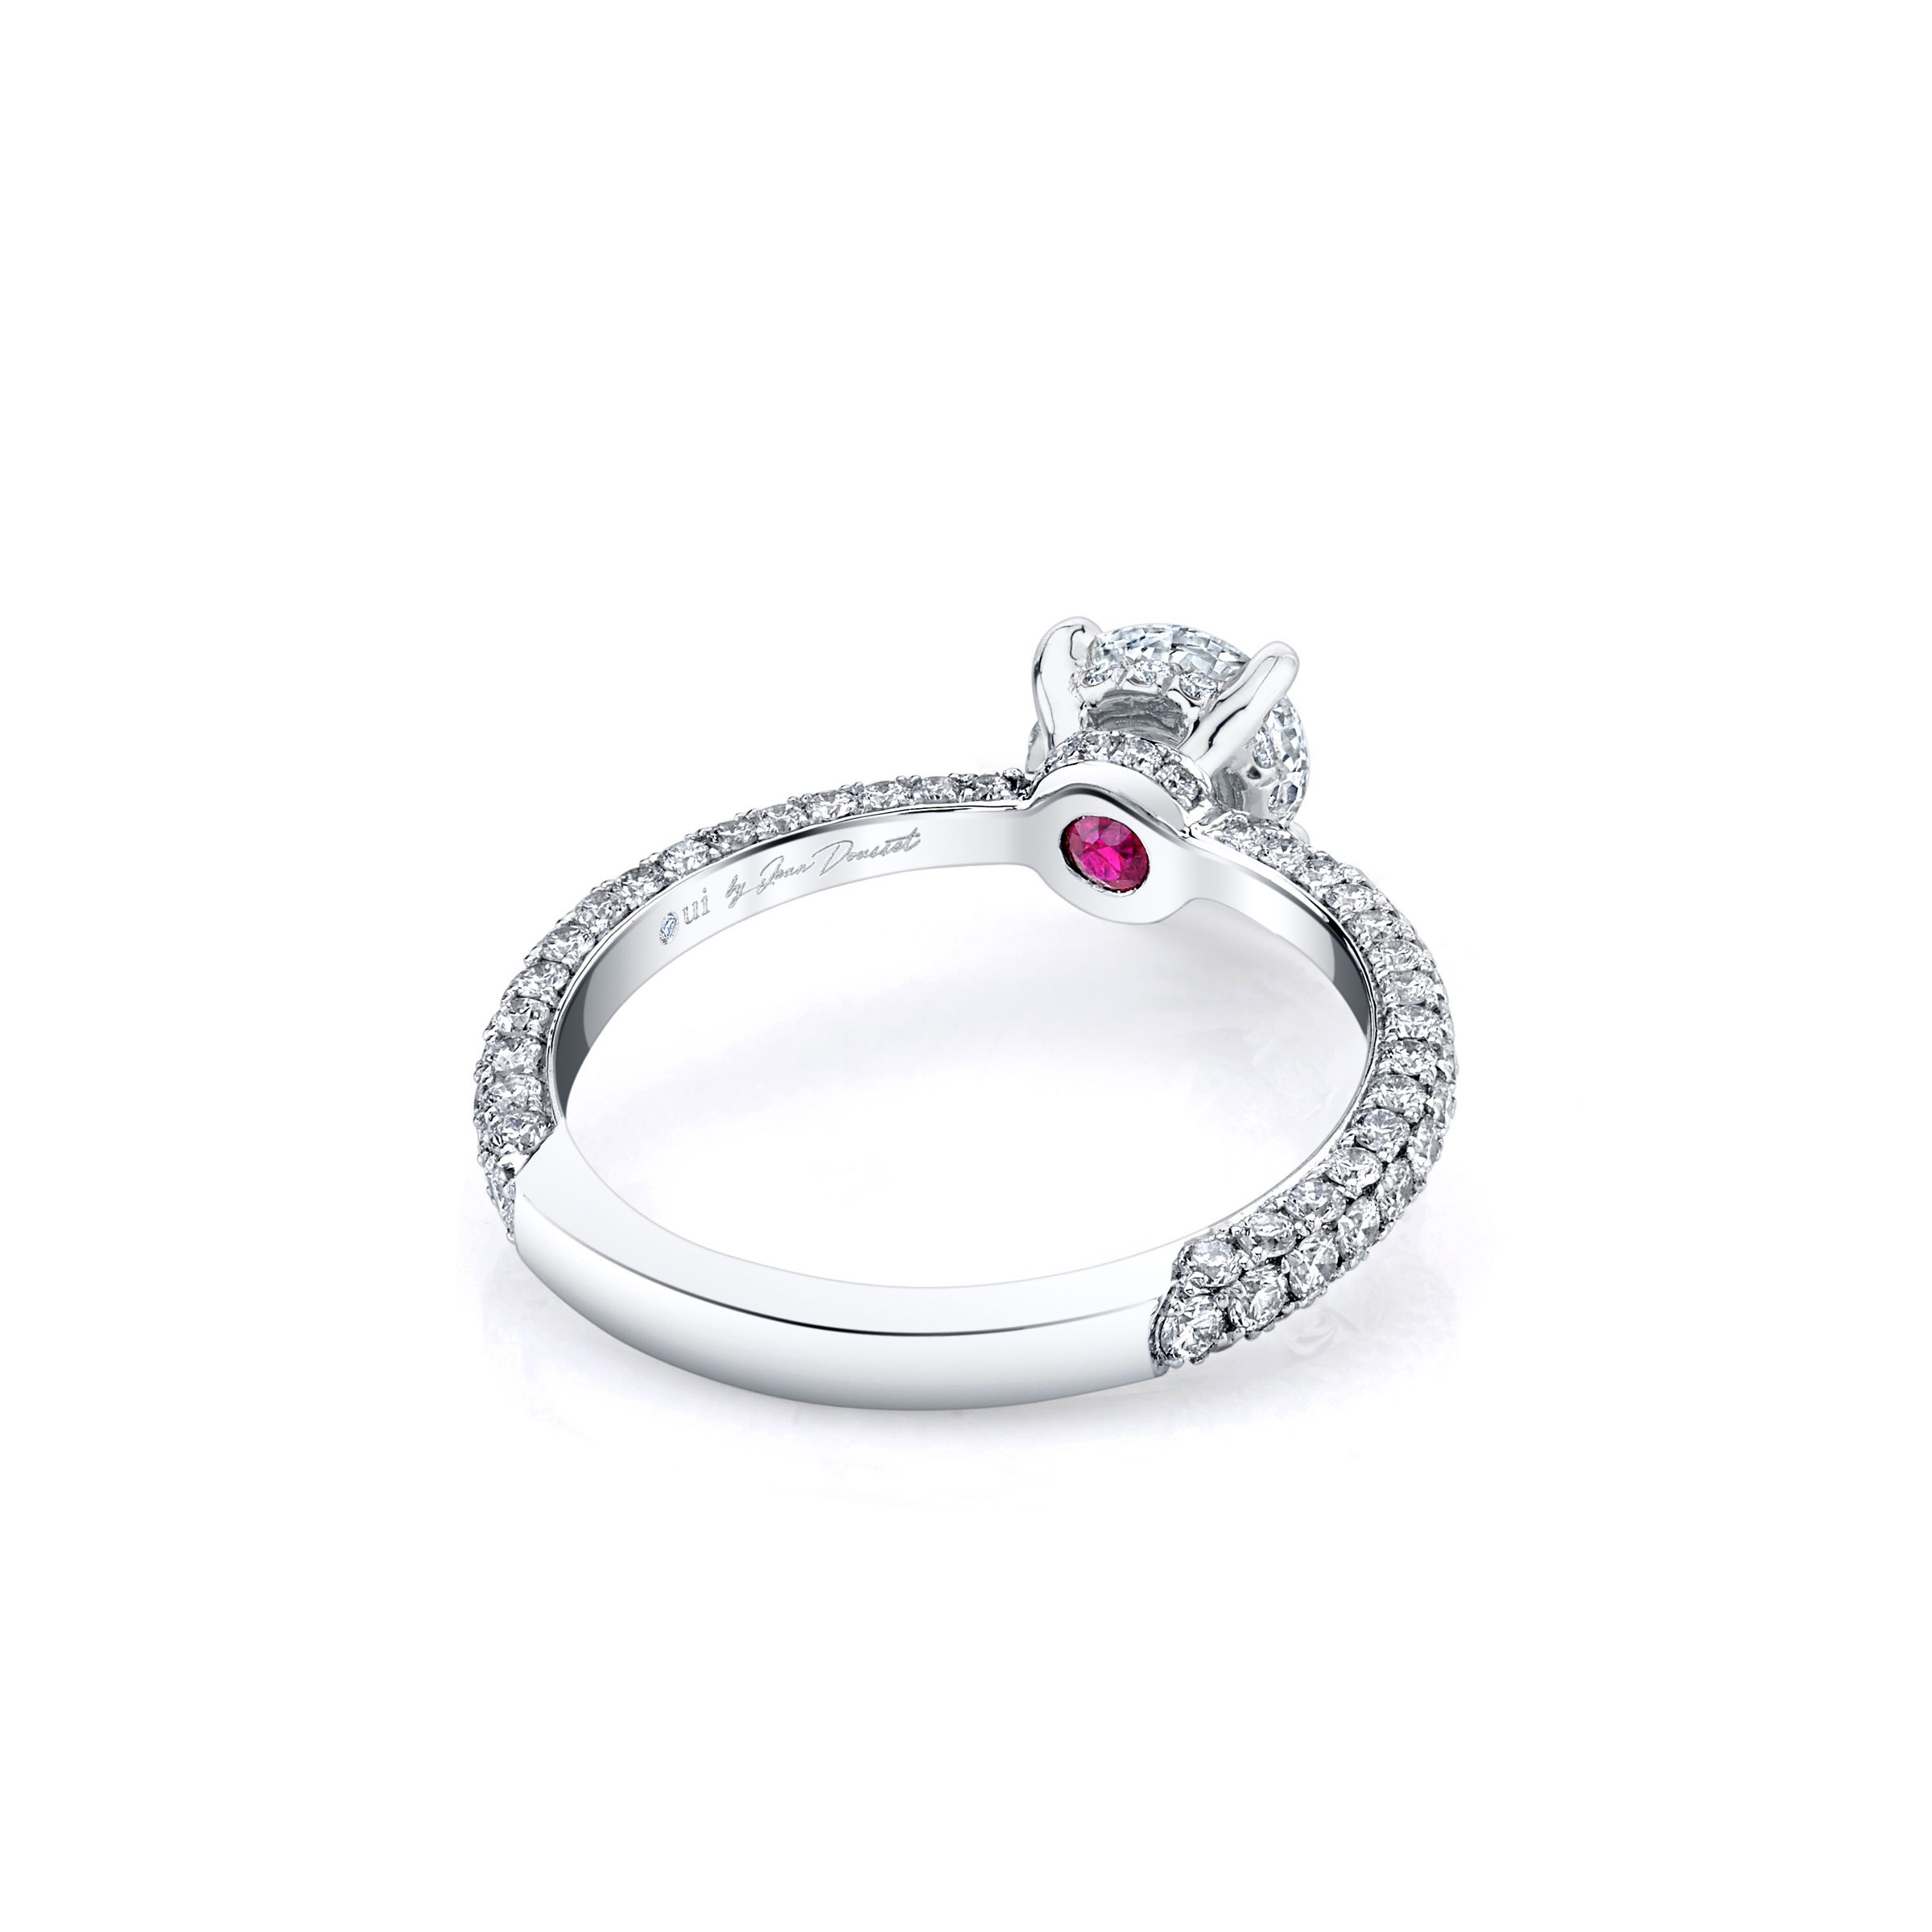 Jacqueline Solitaire Round Brilliant Cut Lab Diamond Engagement Ring with three row pavé 18k white gold band. Ring side view.